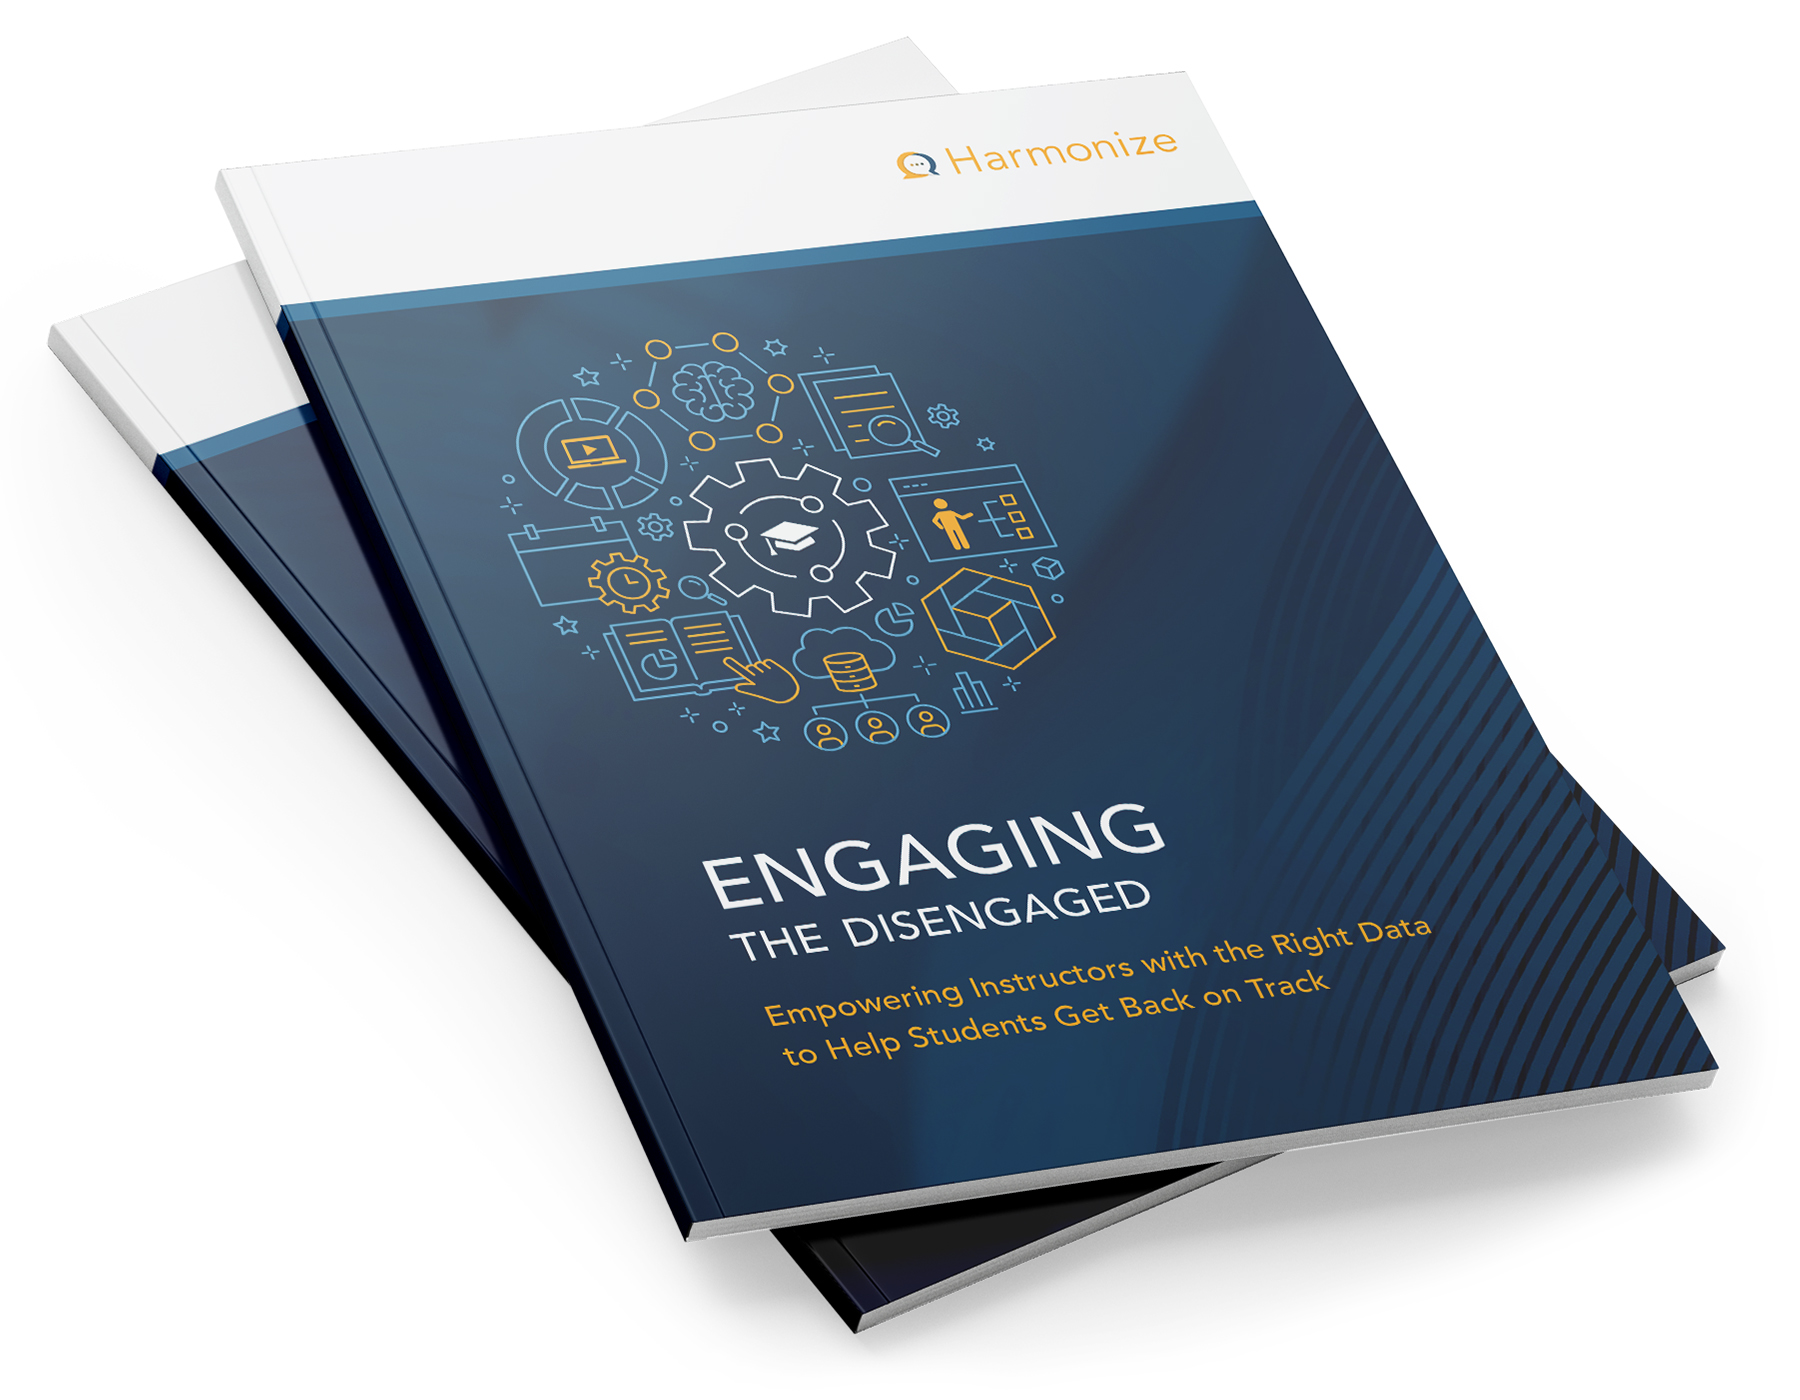 Engaging the Disengaged: Empowering Instructors with the Right Data to Help Students Get Back on Track